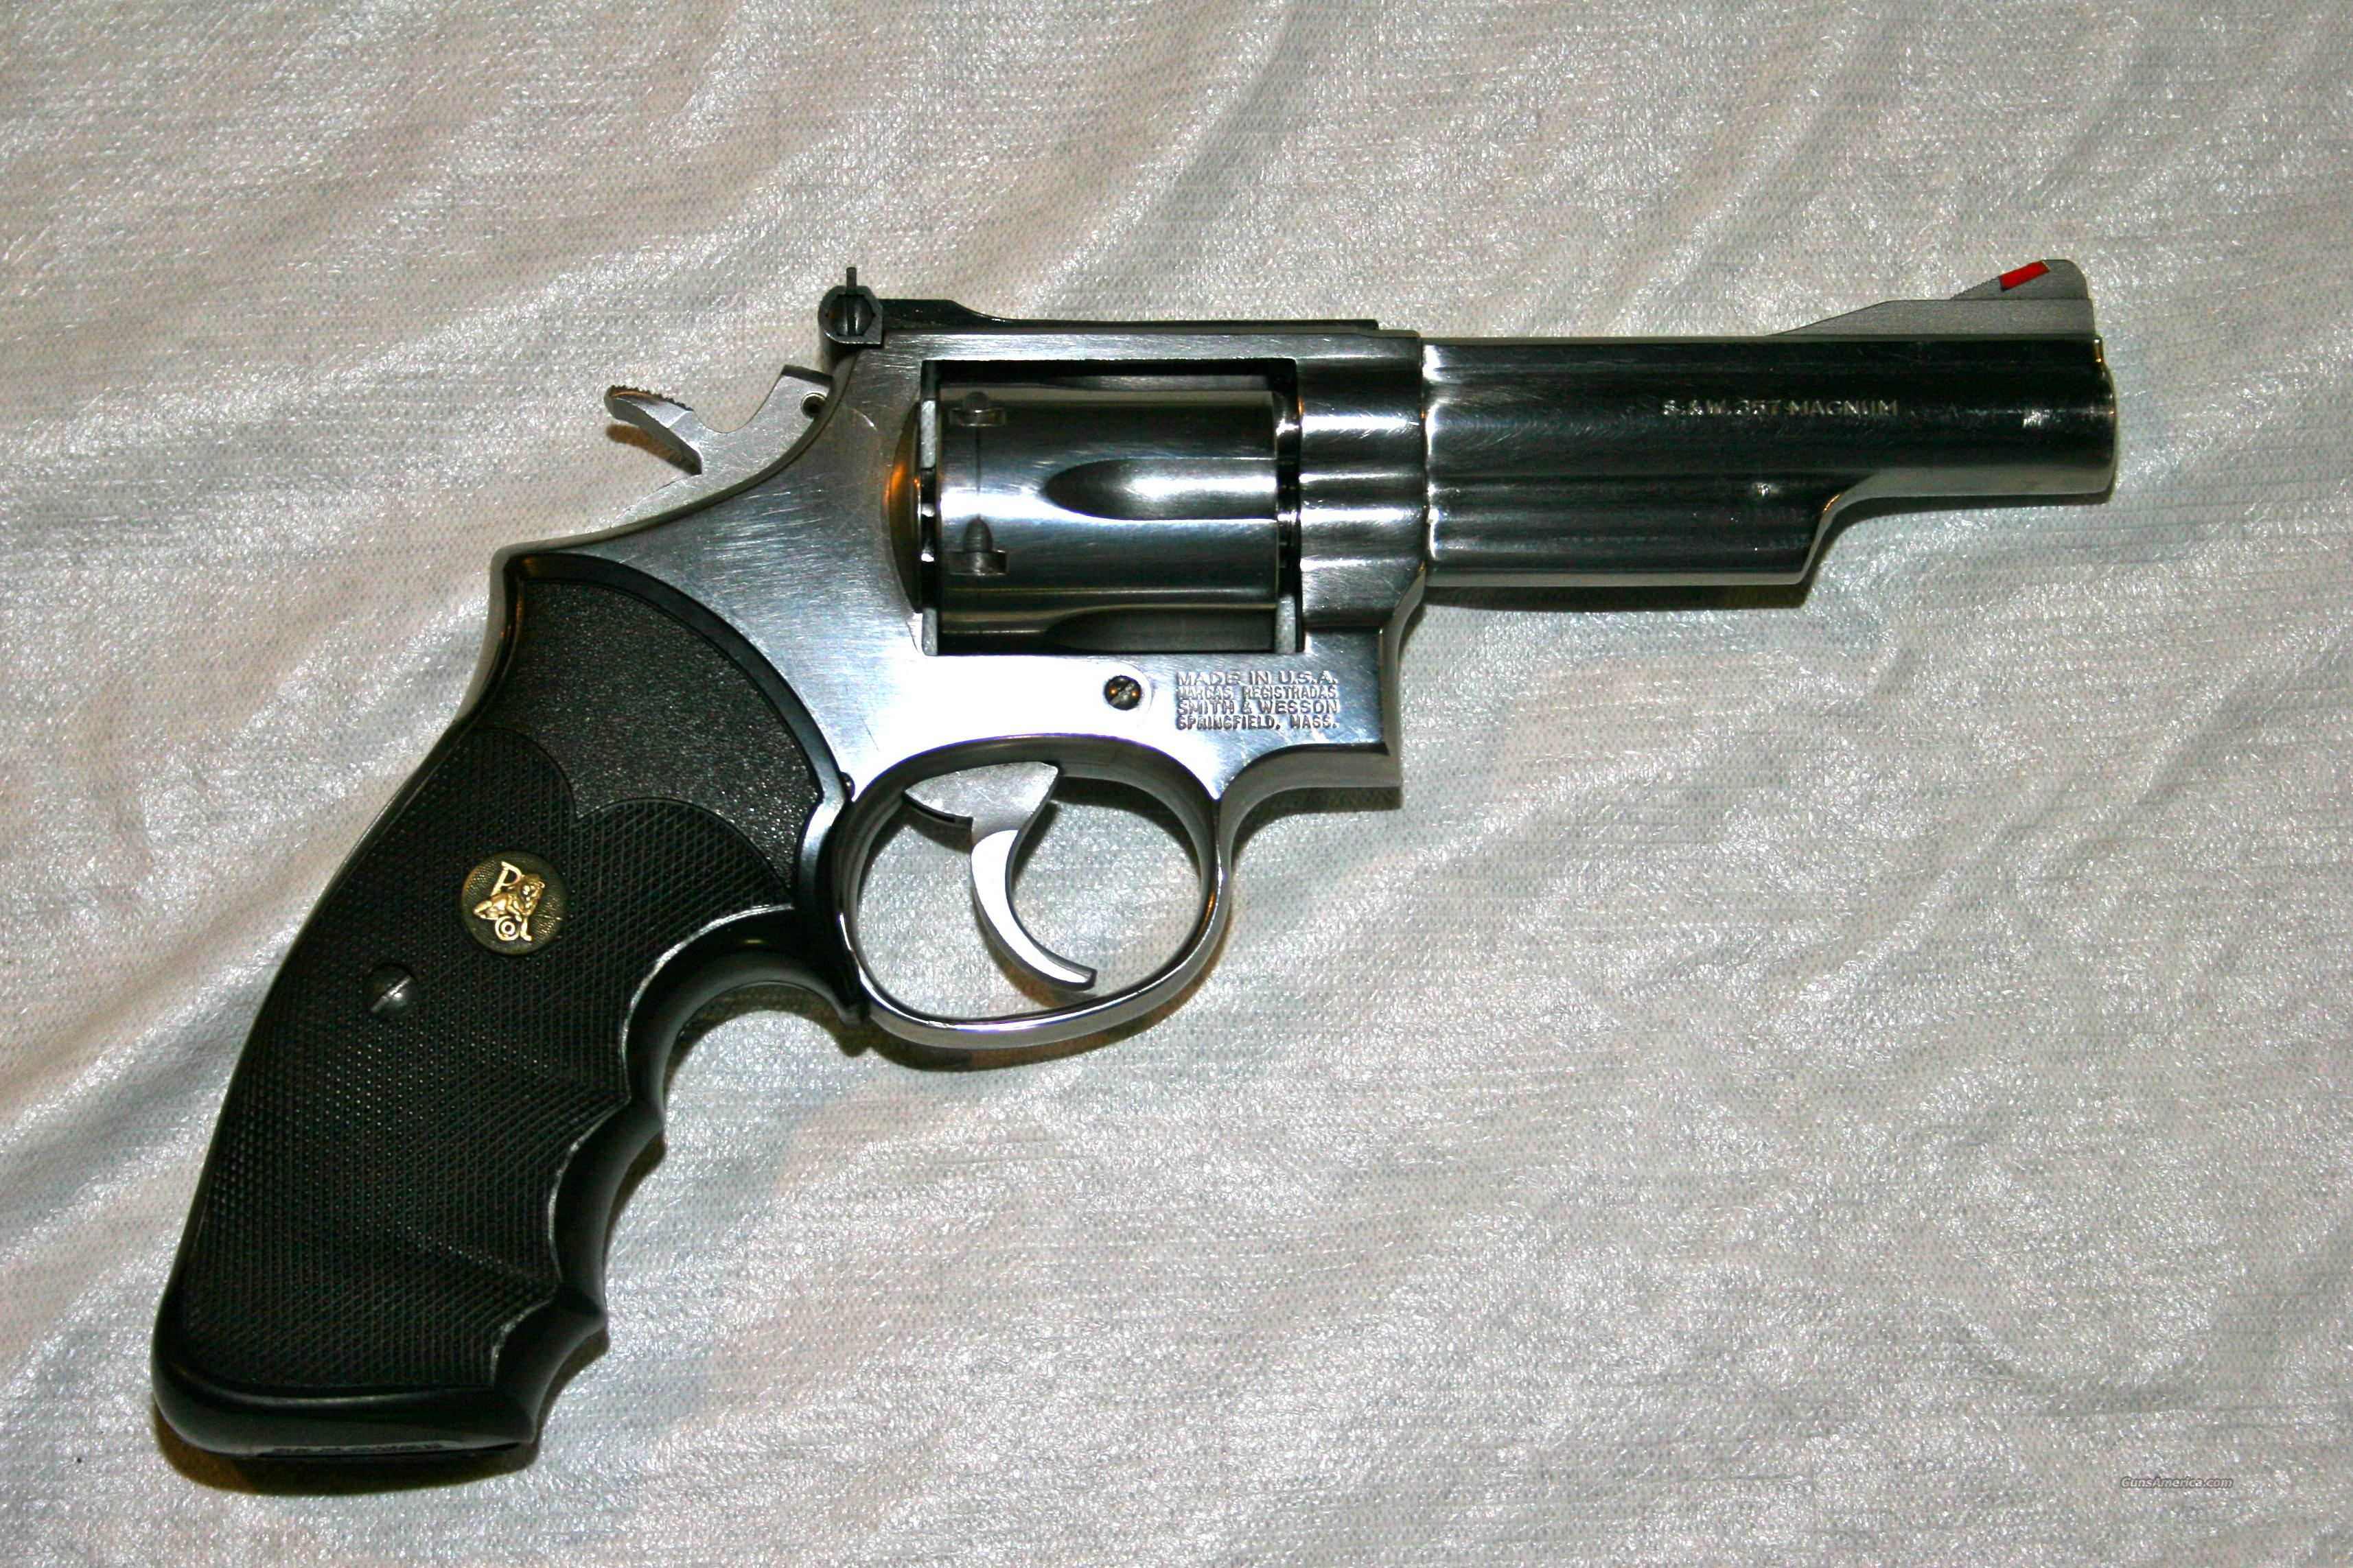 Smith & Wesson Model 66-2, .357 Magnum  Guns > Pistols > Smith & Wesson Revolvers > Full Frame Revolver